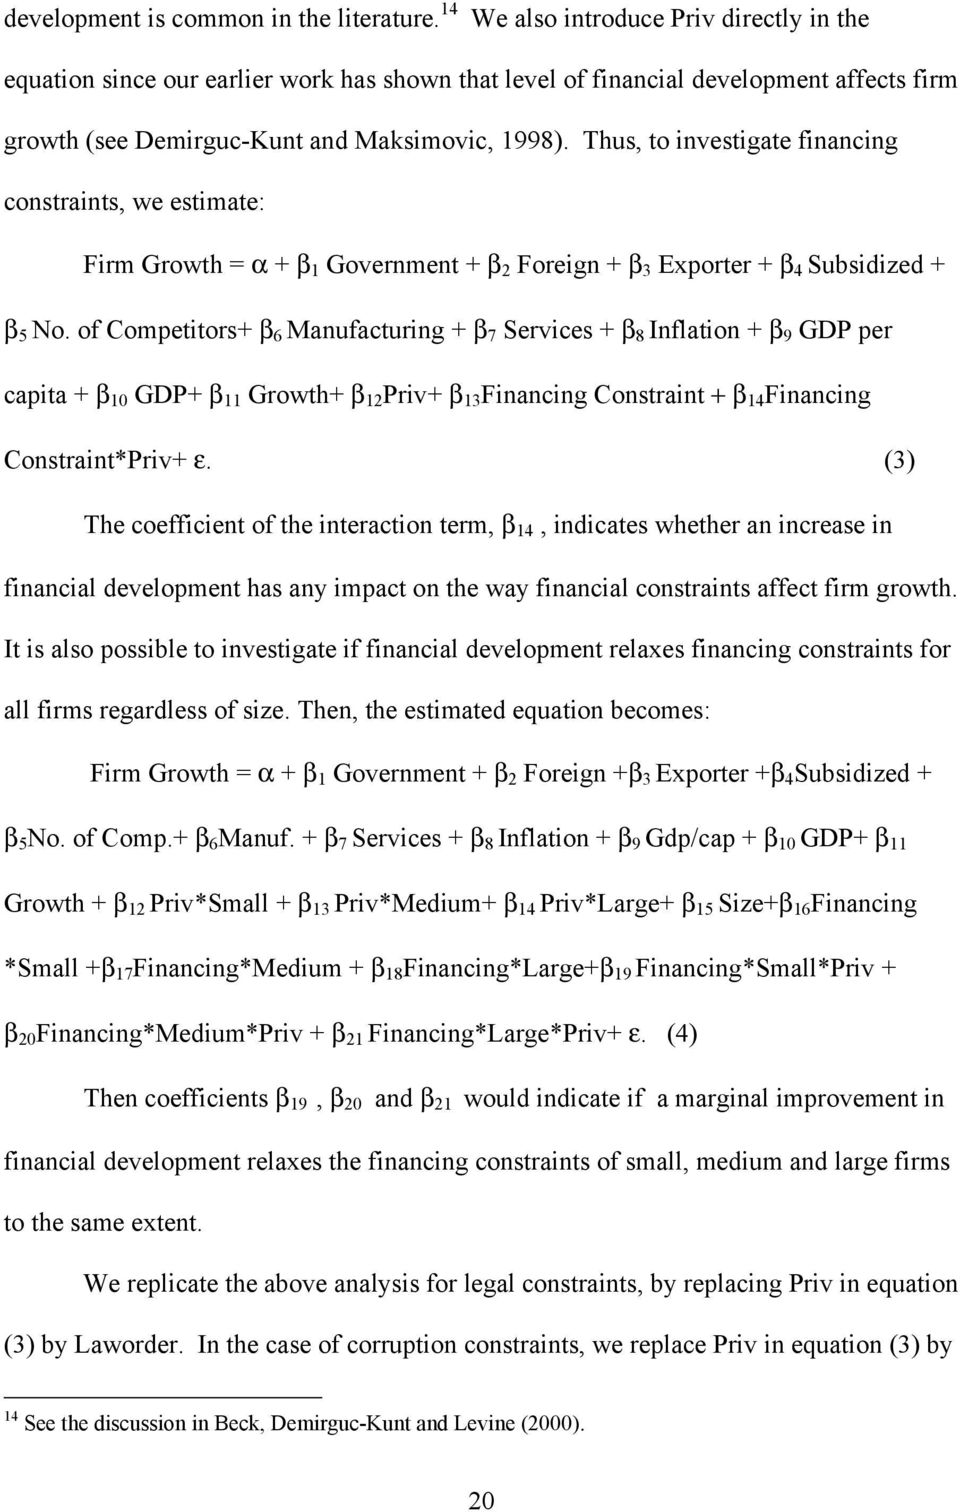 Thus, to investigate financing constraints, we estimate: Firm Growth = α + β 1 Government + β 2 Foreign + β 3 Exporter + β 4 Subsidized + β 5 No.